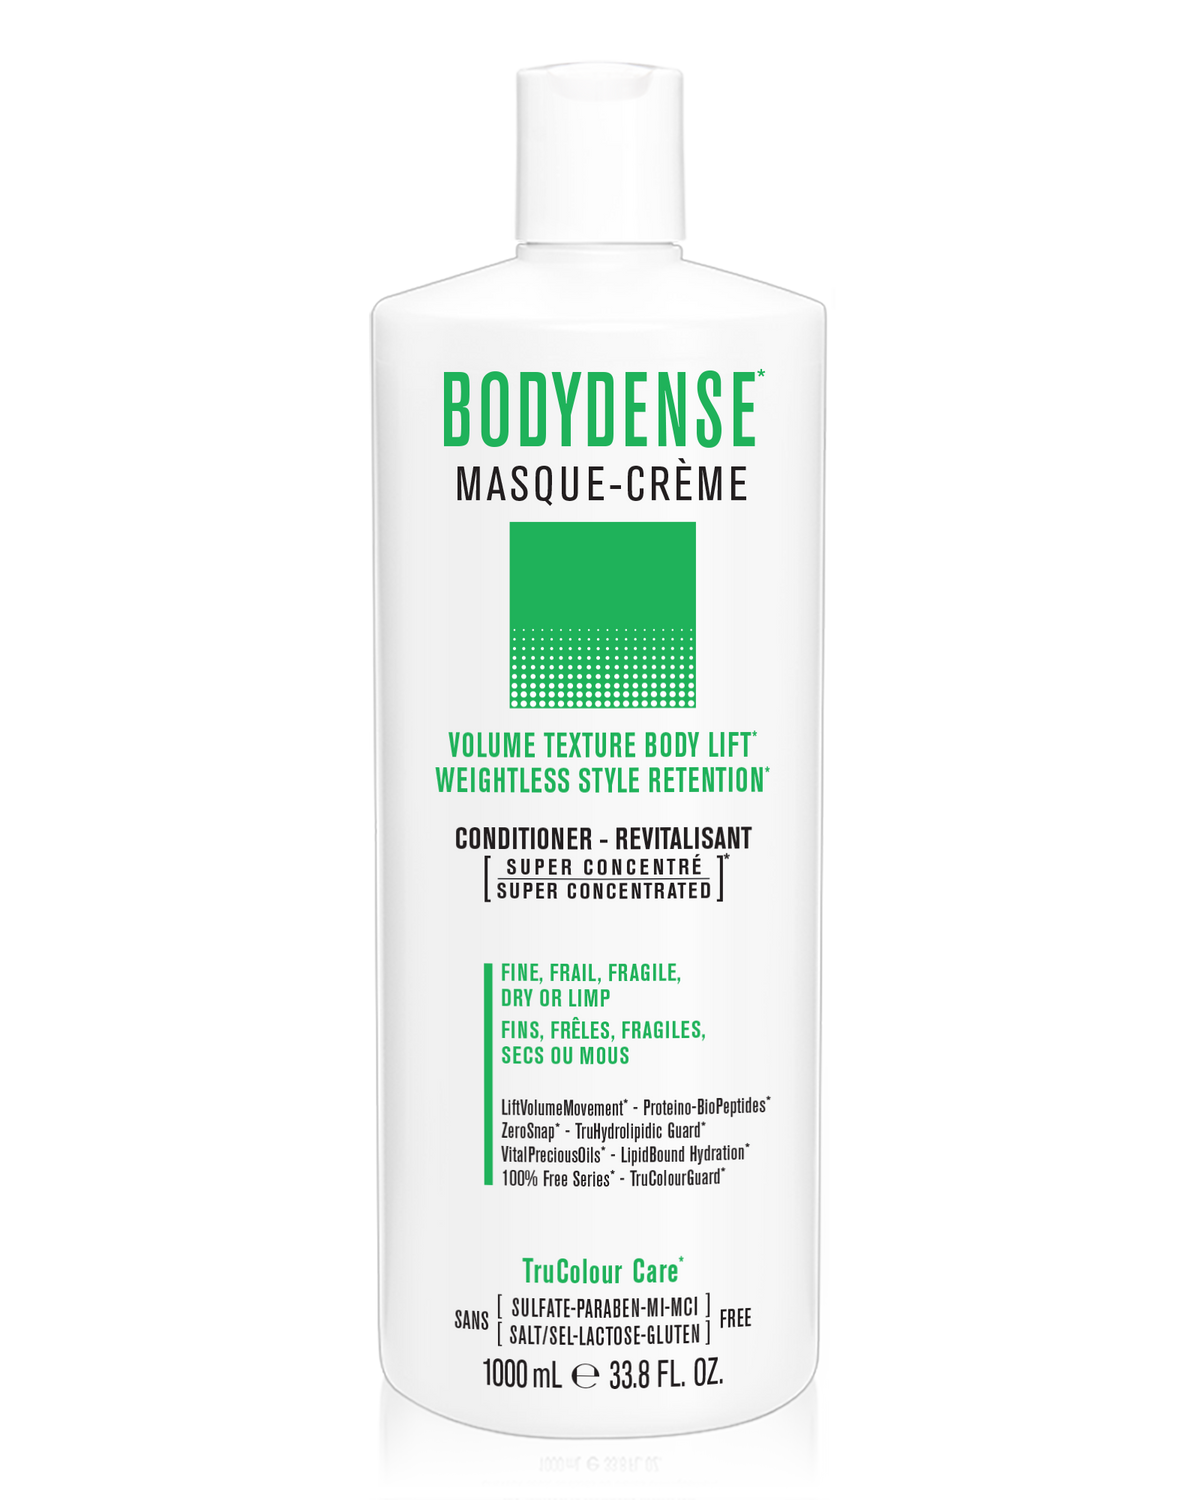 BODYDENSE Volume Texture Body Lift Masque-Creme (conditioner) - SNOBGIRLS Canada